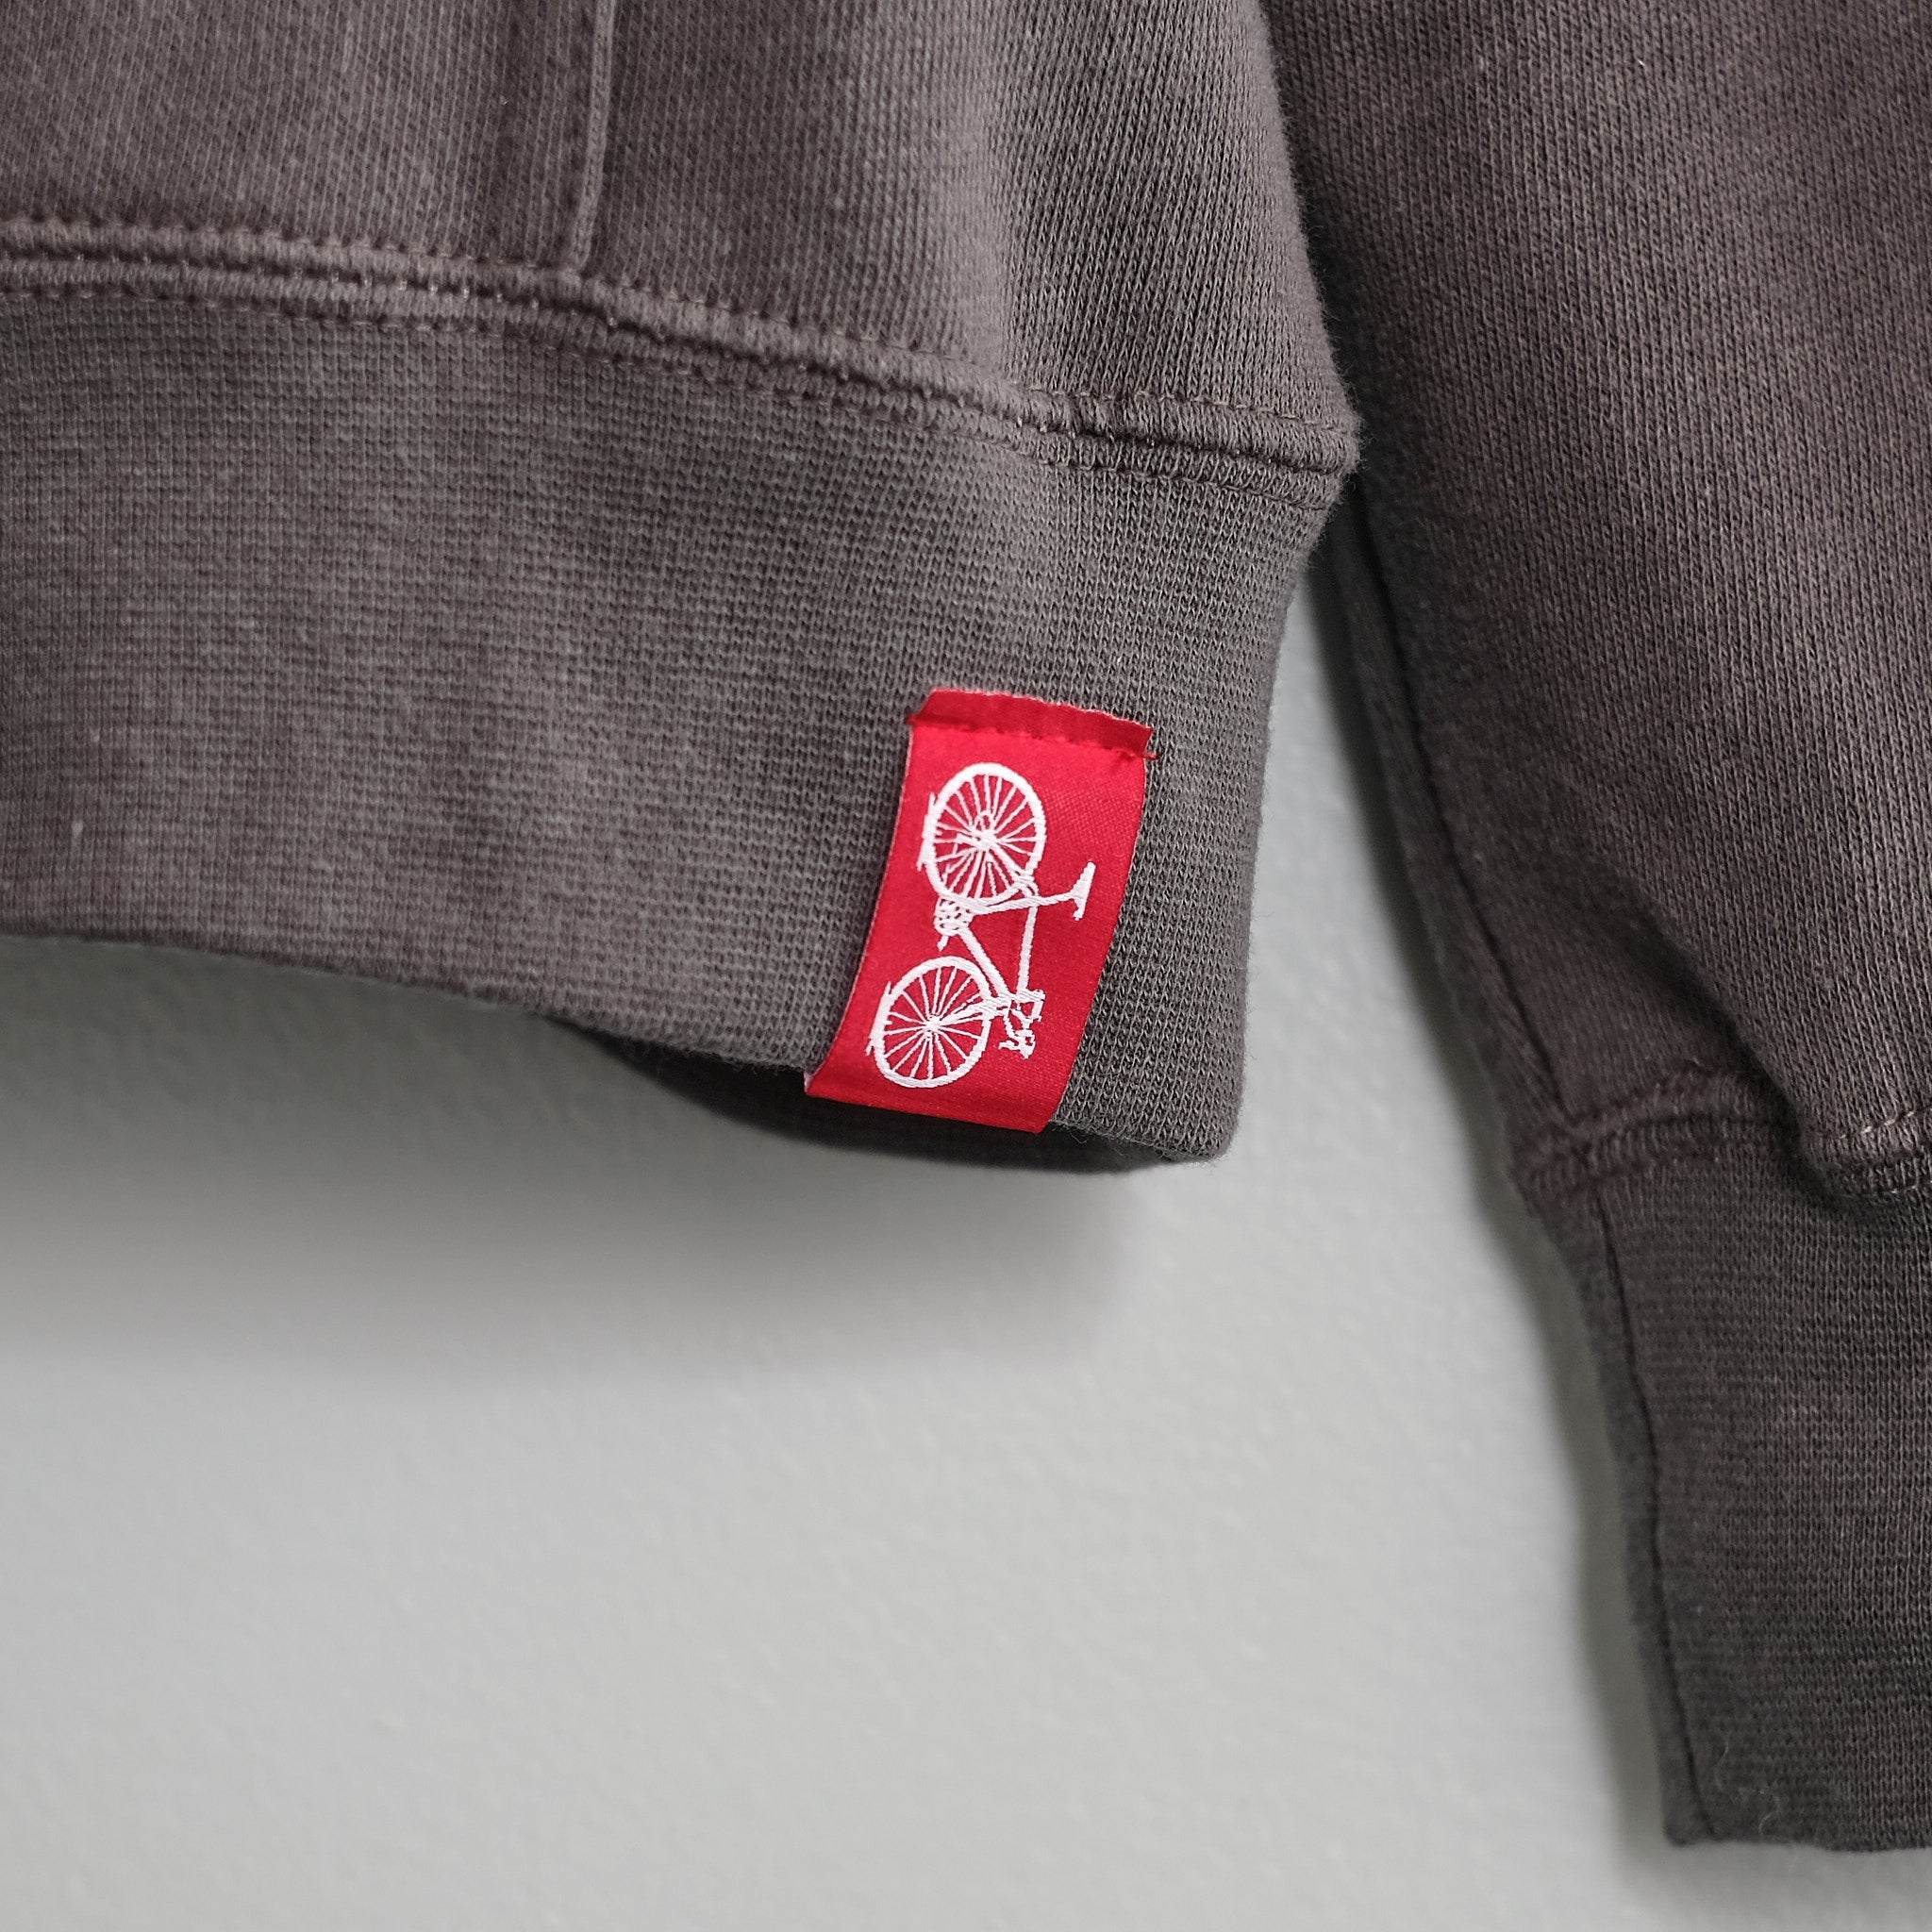 sewn bicycle tag detail red tag charcoal gray sweatshirt bike